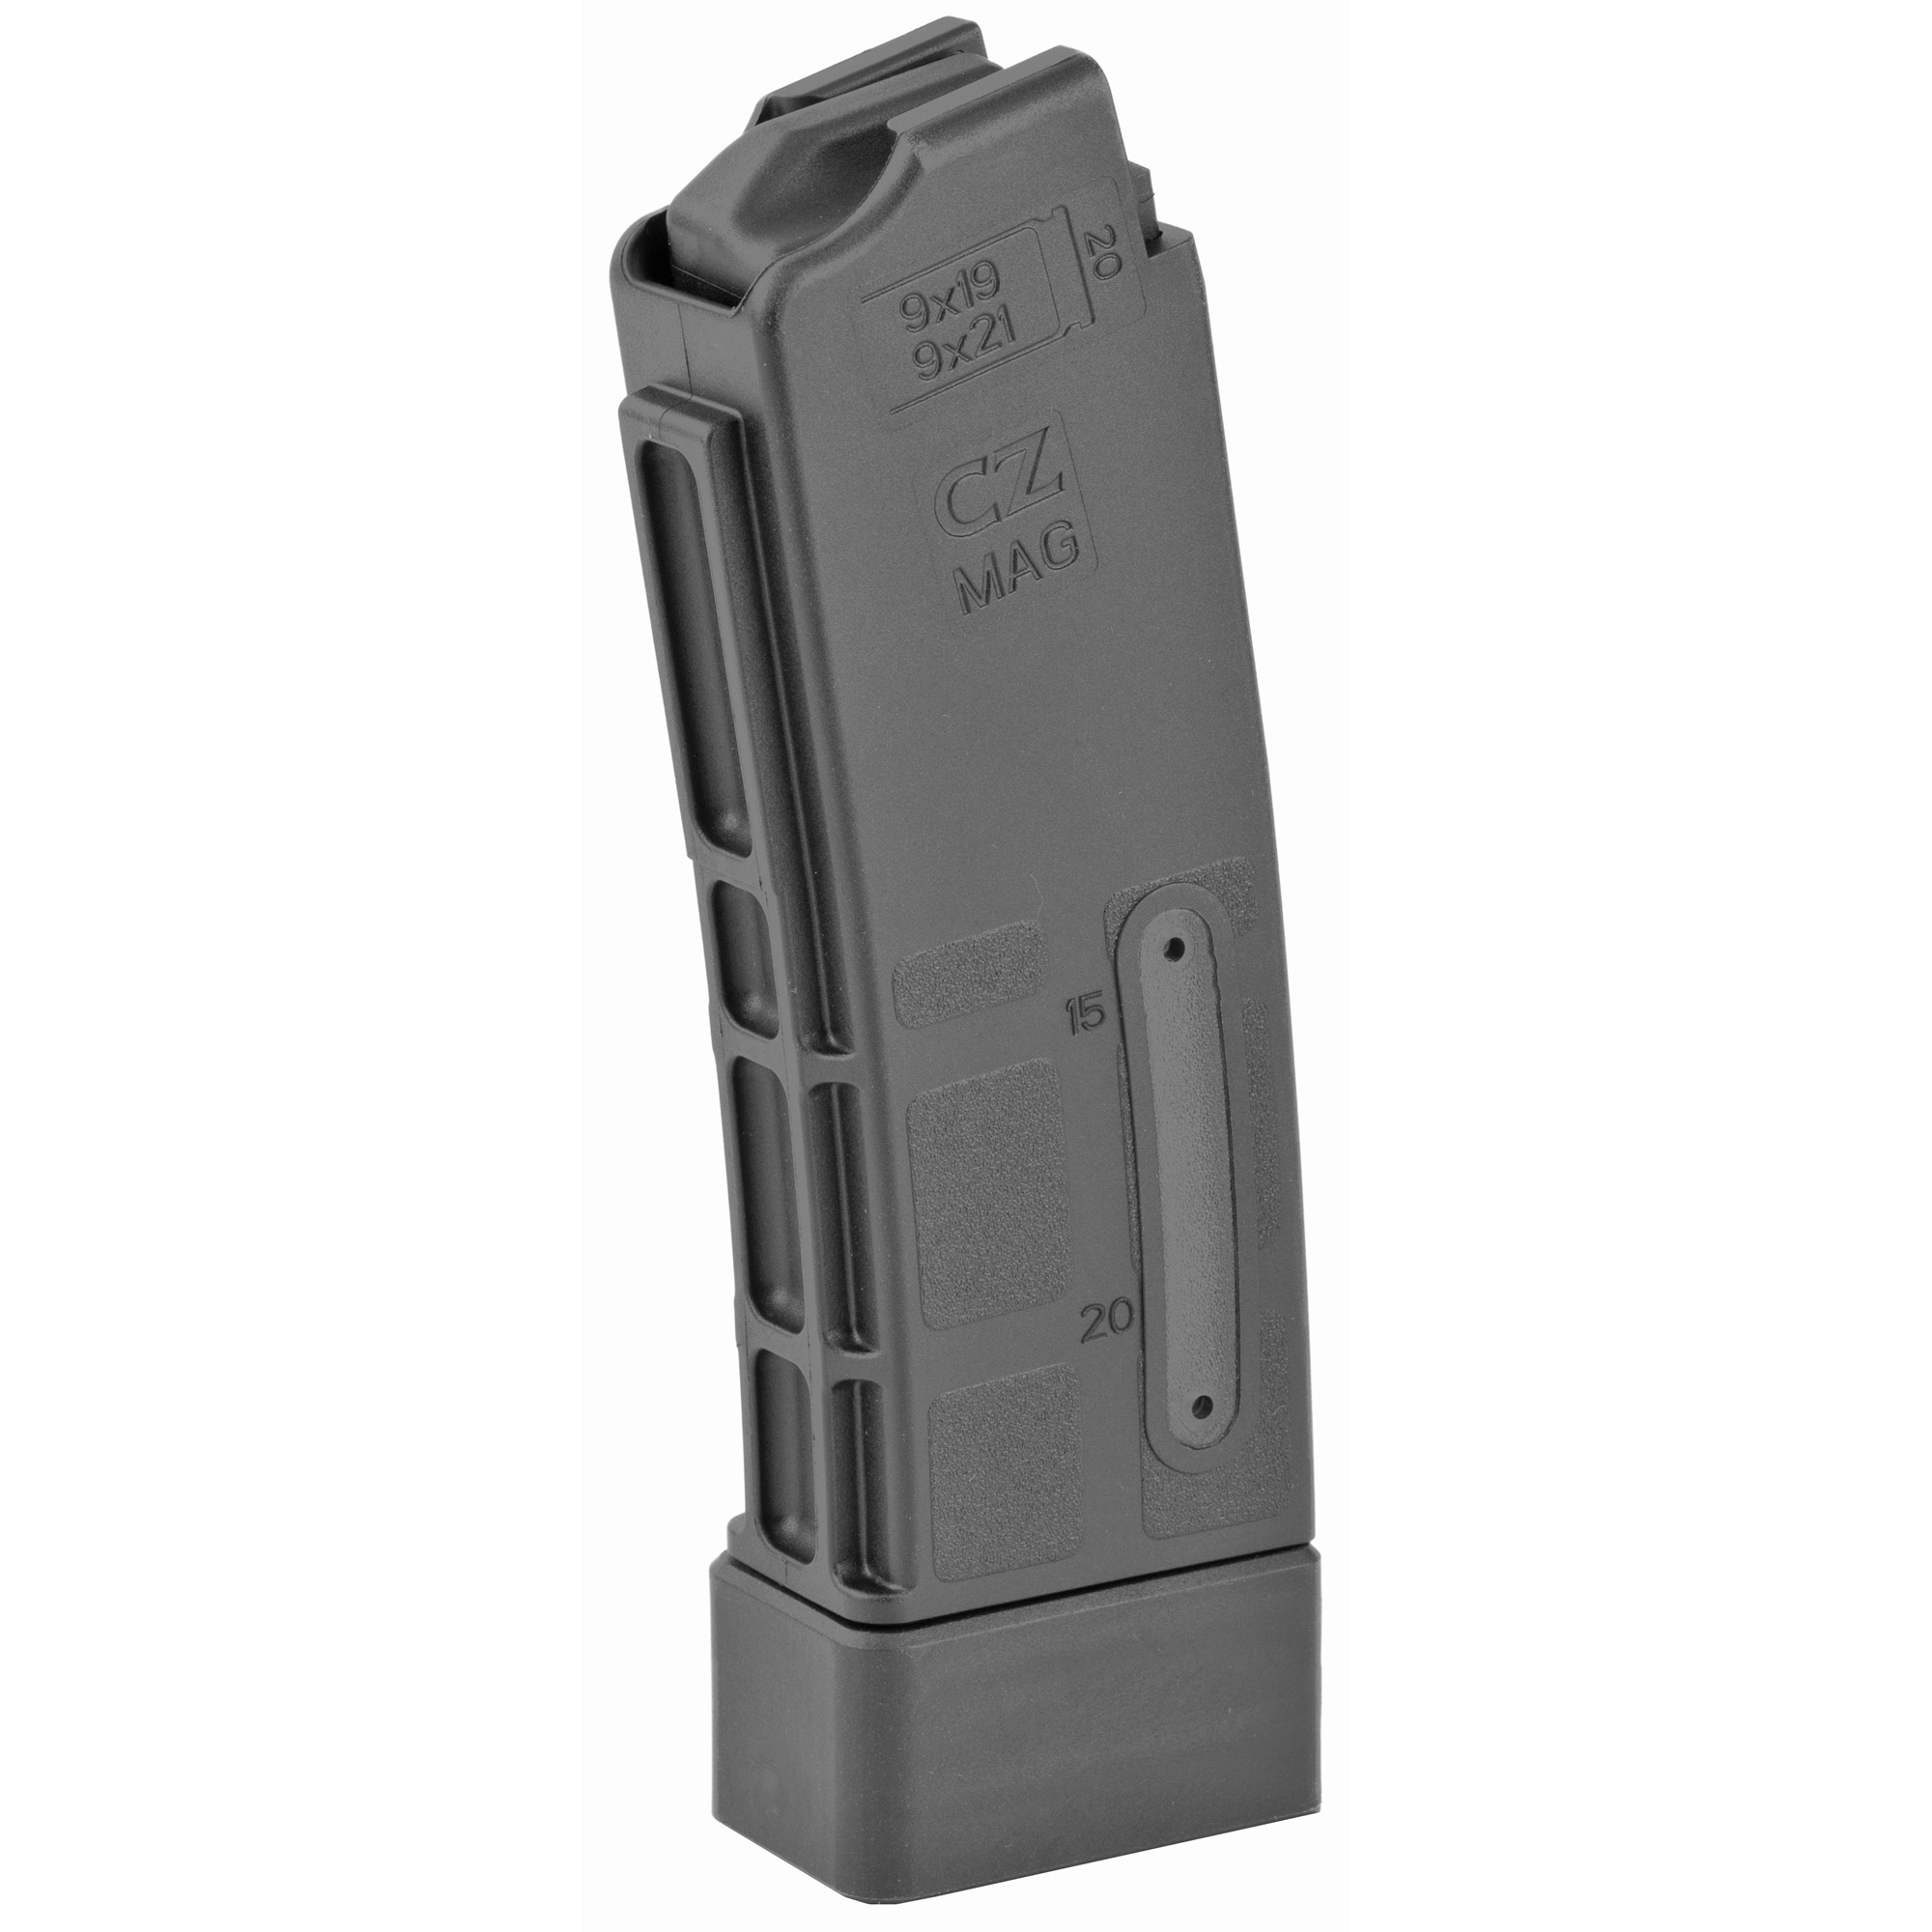 This CZ factory OEM magazine features polymer construction and is designed for reliable operation in the CZ Scorpion.